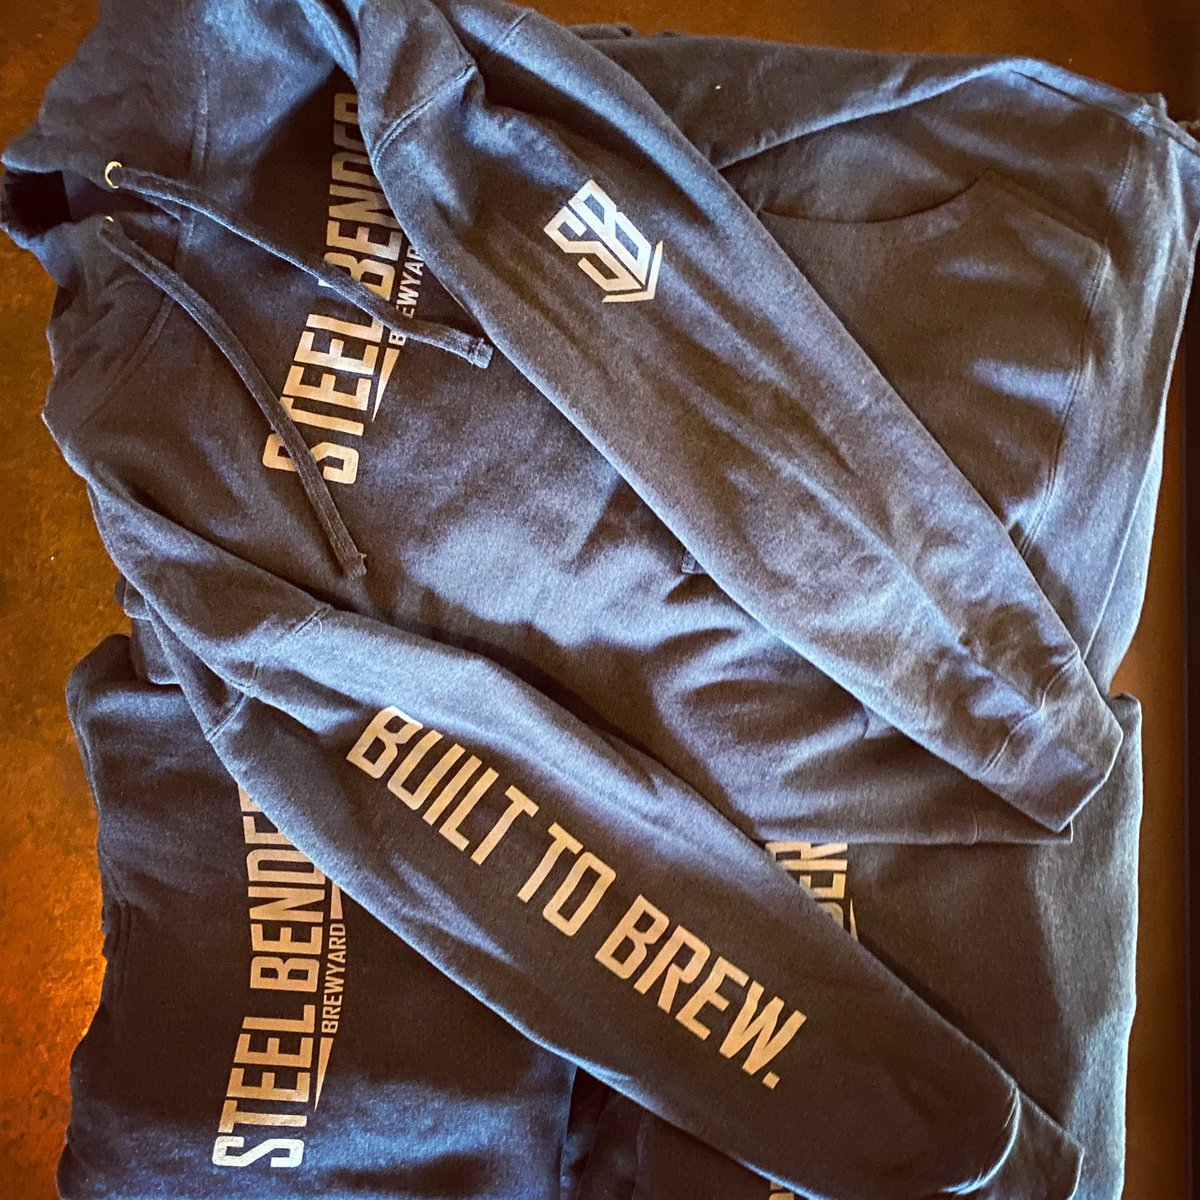 NEW MERCH ALERT! ⠀ #GetYourSBBOn and with super soft, medium-weight navy hoodies, just in time for fall!⠀ Unisex sizes S-2XL are $40/$42 (2XL), branding on front and both sleeves. Taproom purchases only. Apologies, no exchanges or returns during The VID. ⠀⠀ #BuiltToBrew https://t.co/bRAavVP1zq